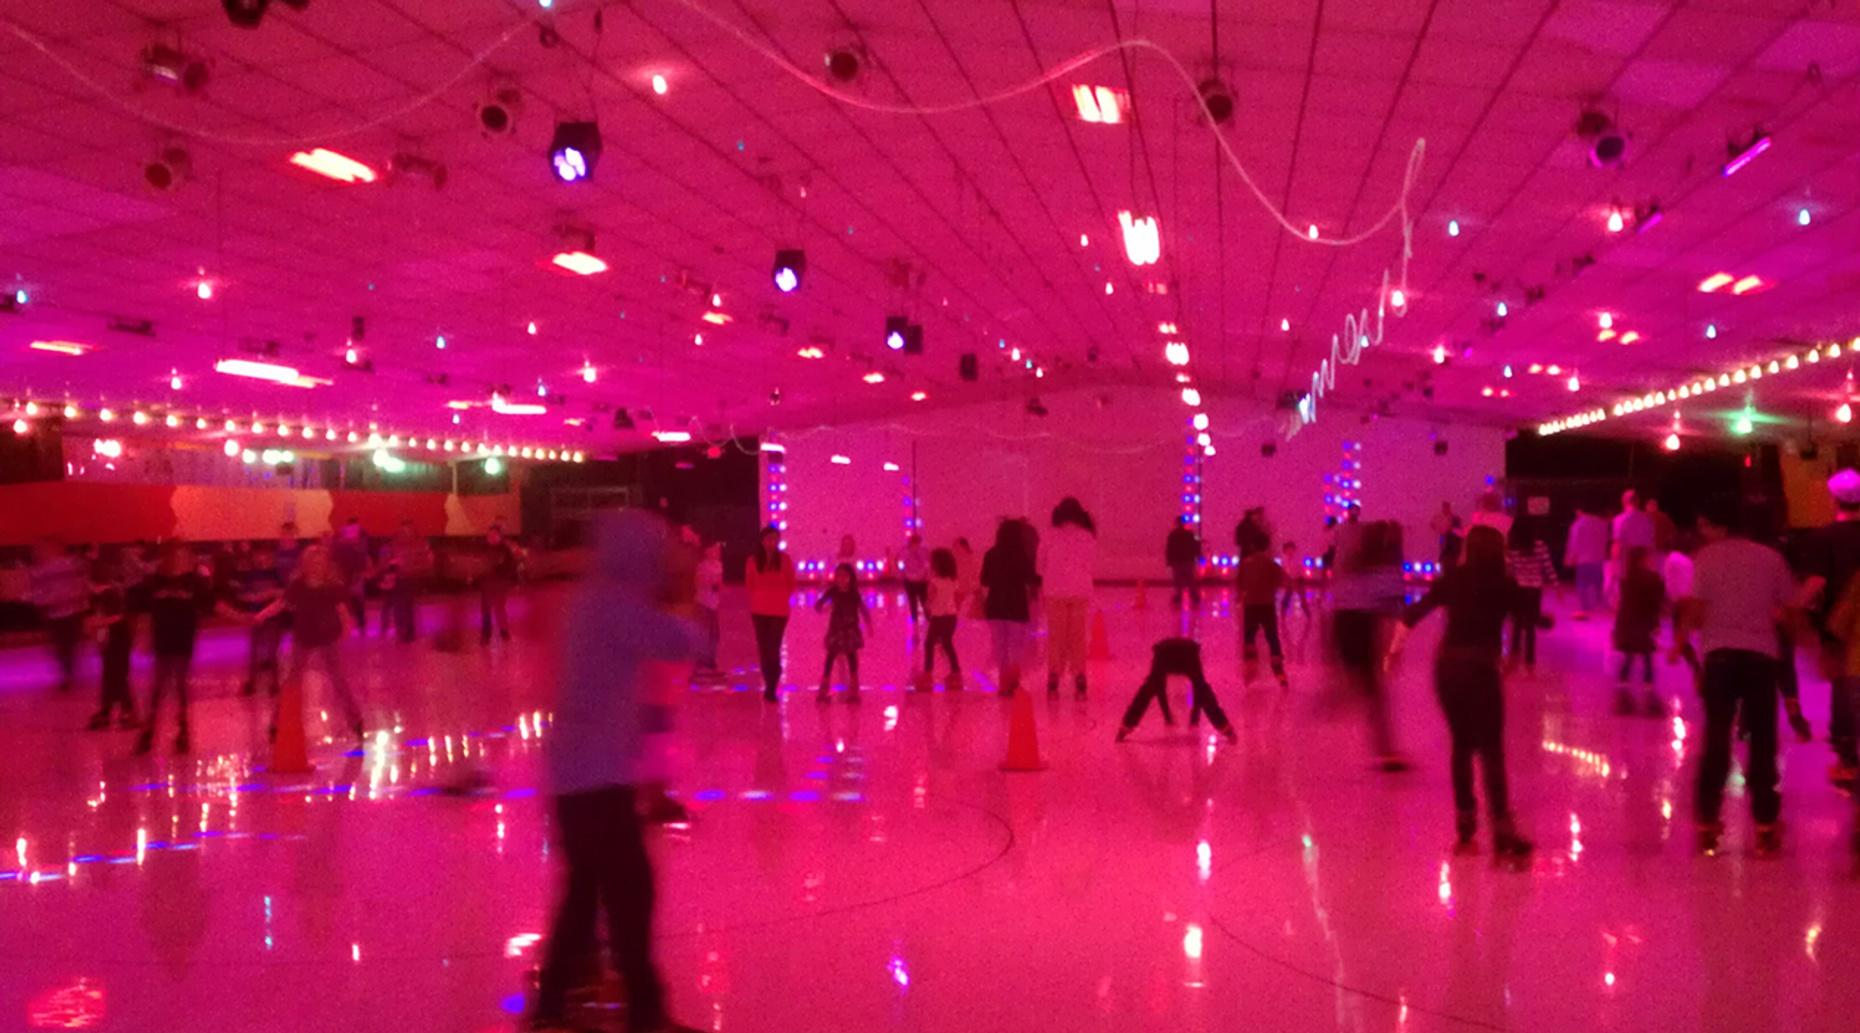 Birthday Party at a Classic Roller Rink in Wichita